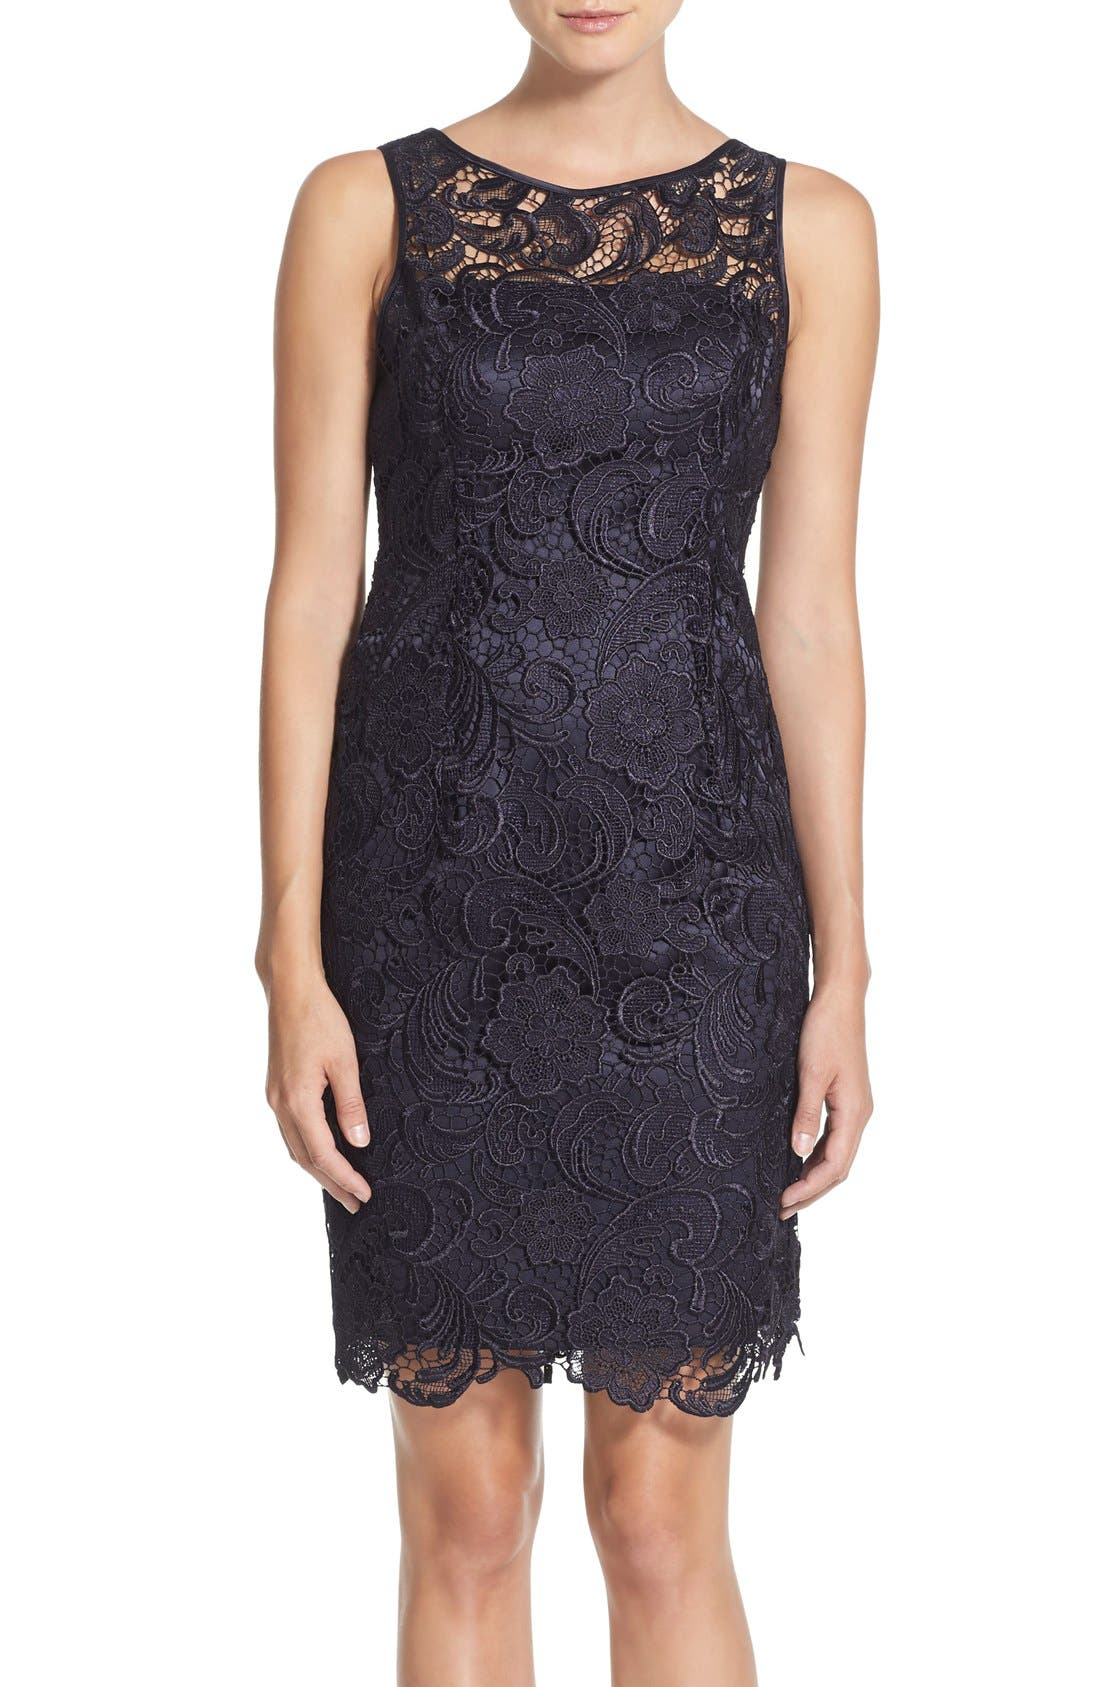 Alternate Image 1 Selected - Adrianna Papell Illusion Bodice Lace Sheath Dress